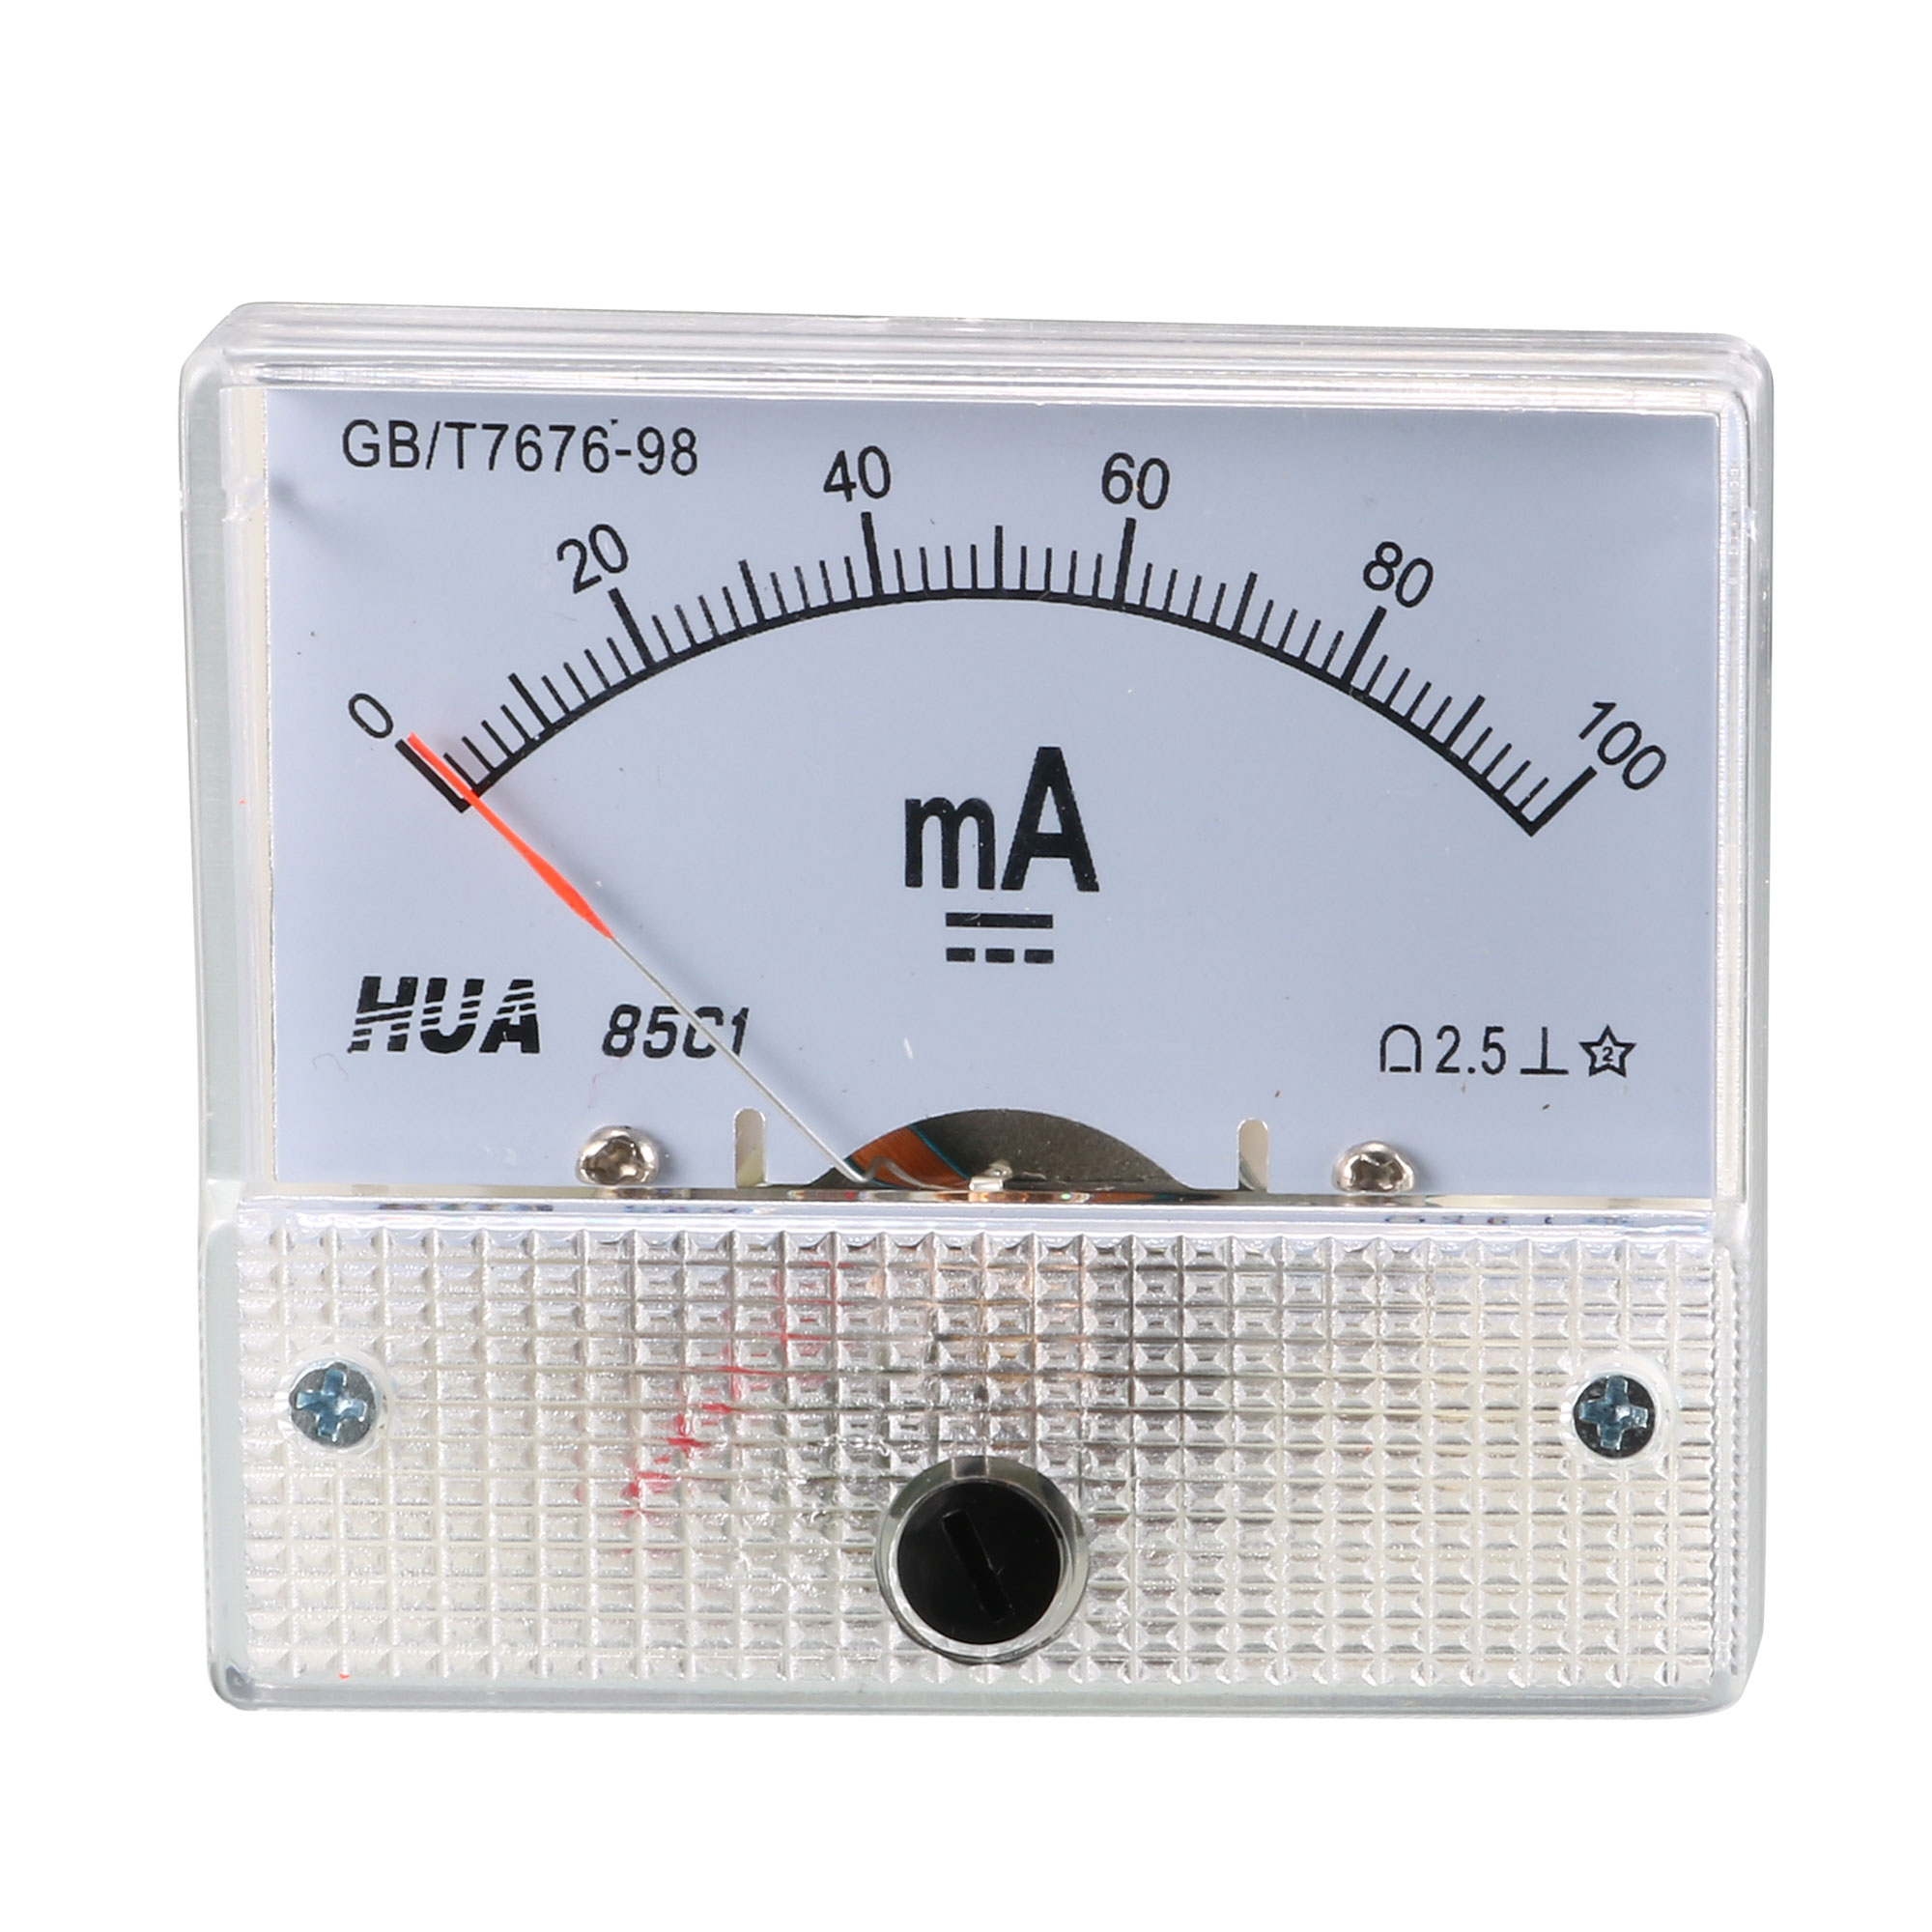 Class 2.5 Accuracy DC 0-100mA Analog Current Panel Meter Ammeter 85C1-mA